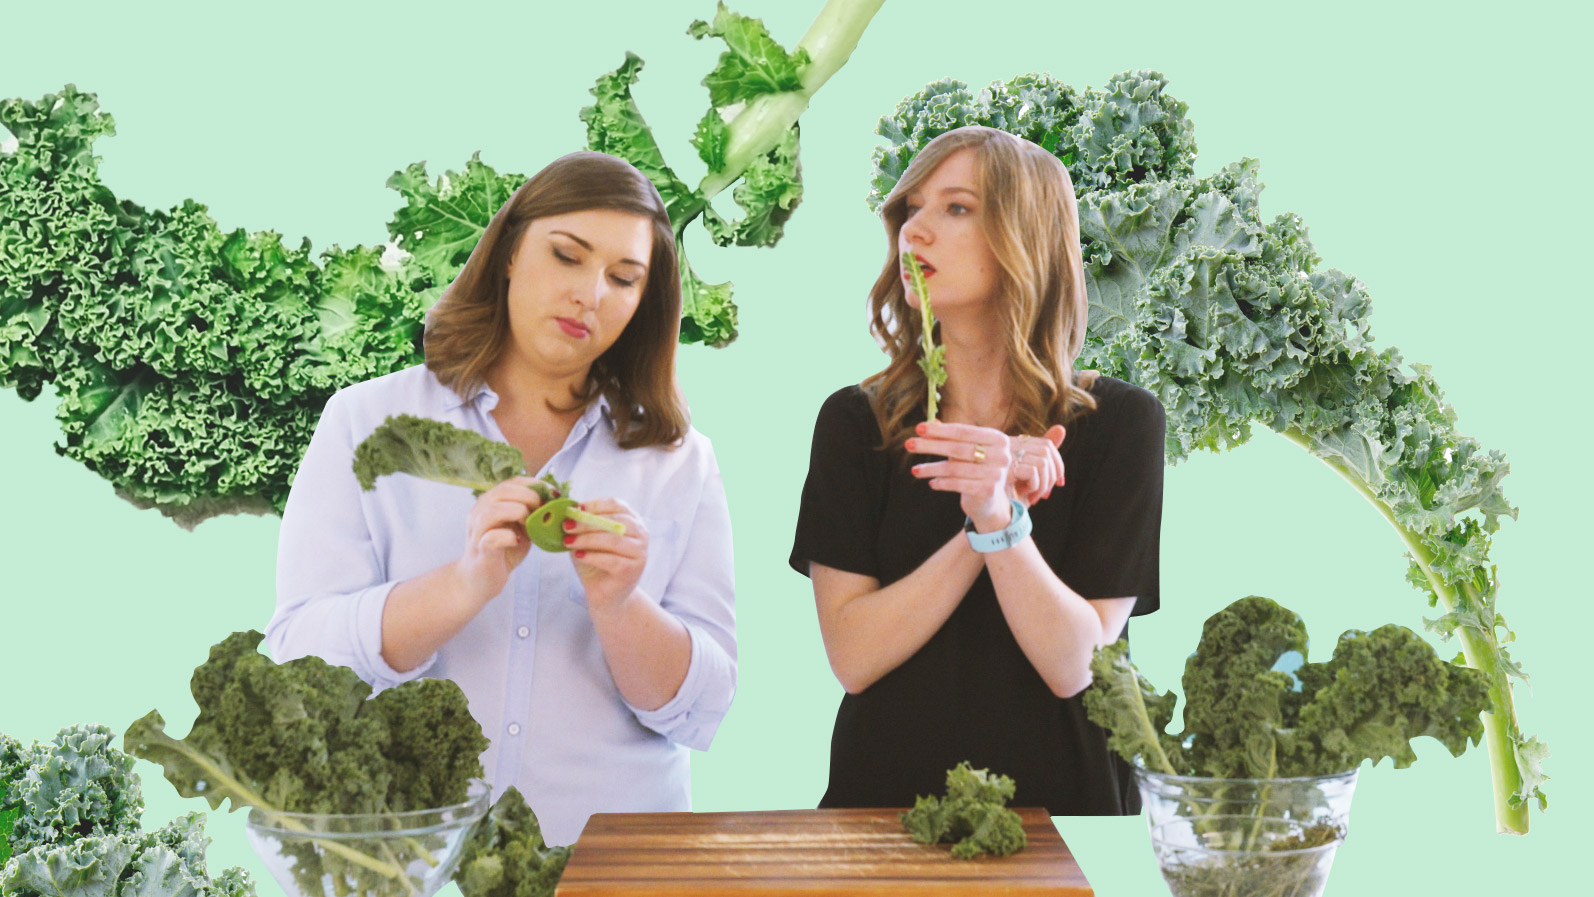 Does Your Kitchen Need a Kale or Herb Stripper? We Tested One to Find Out